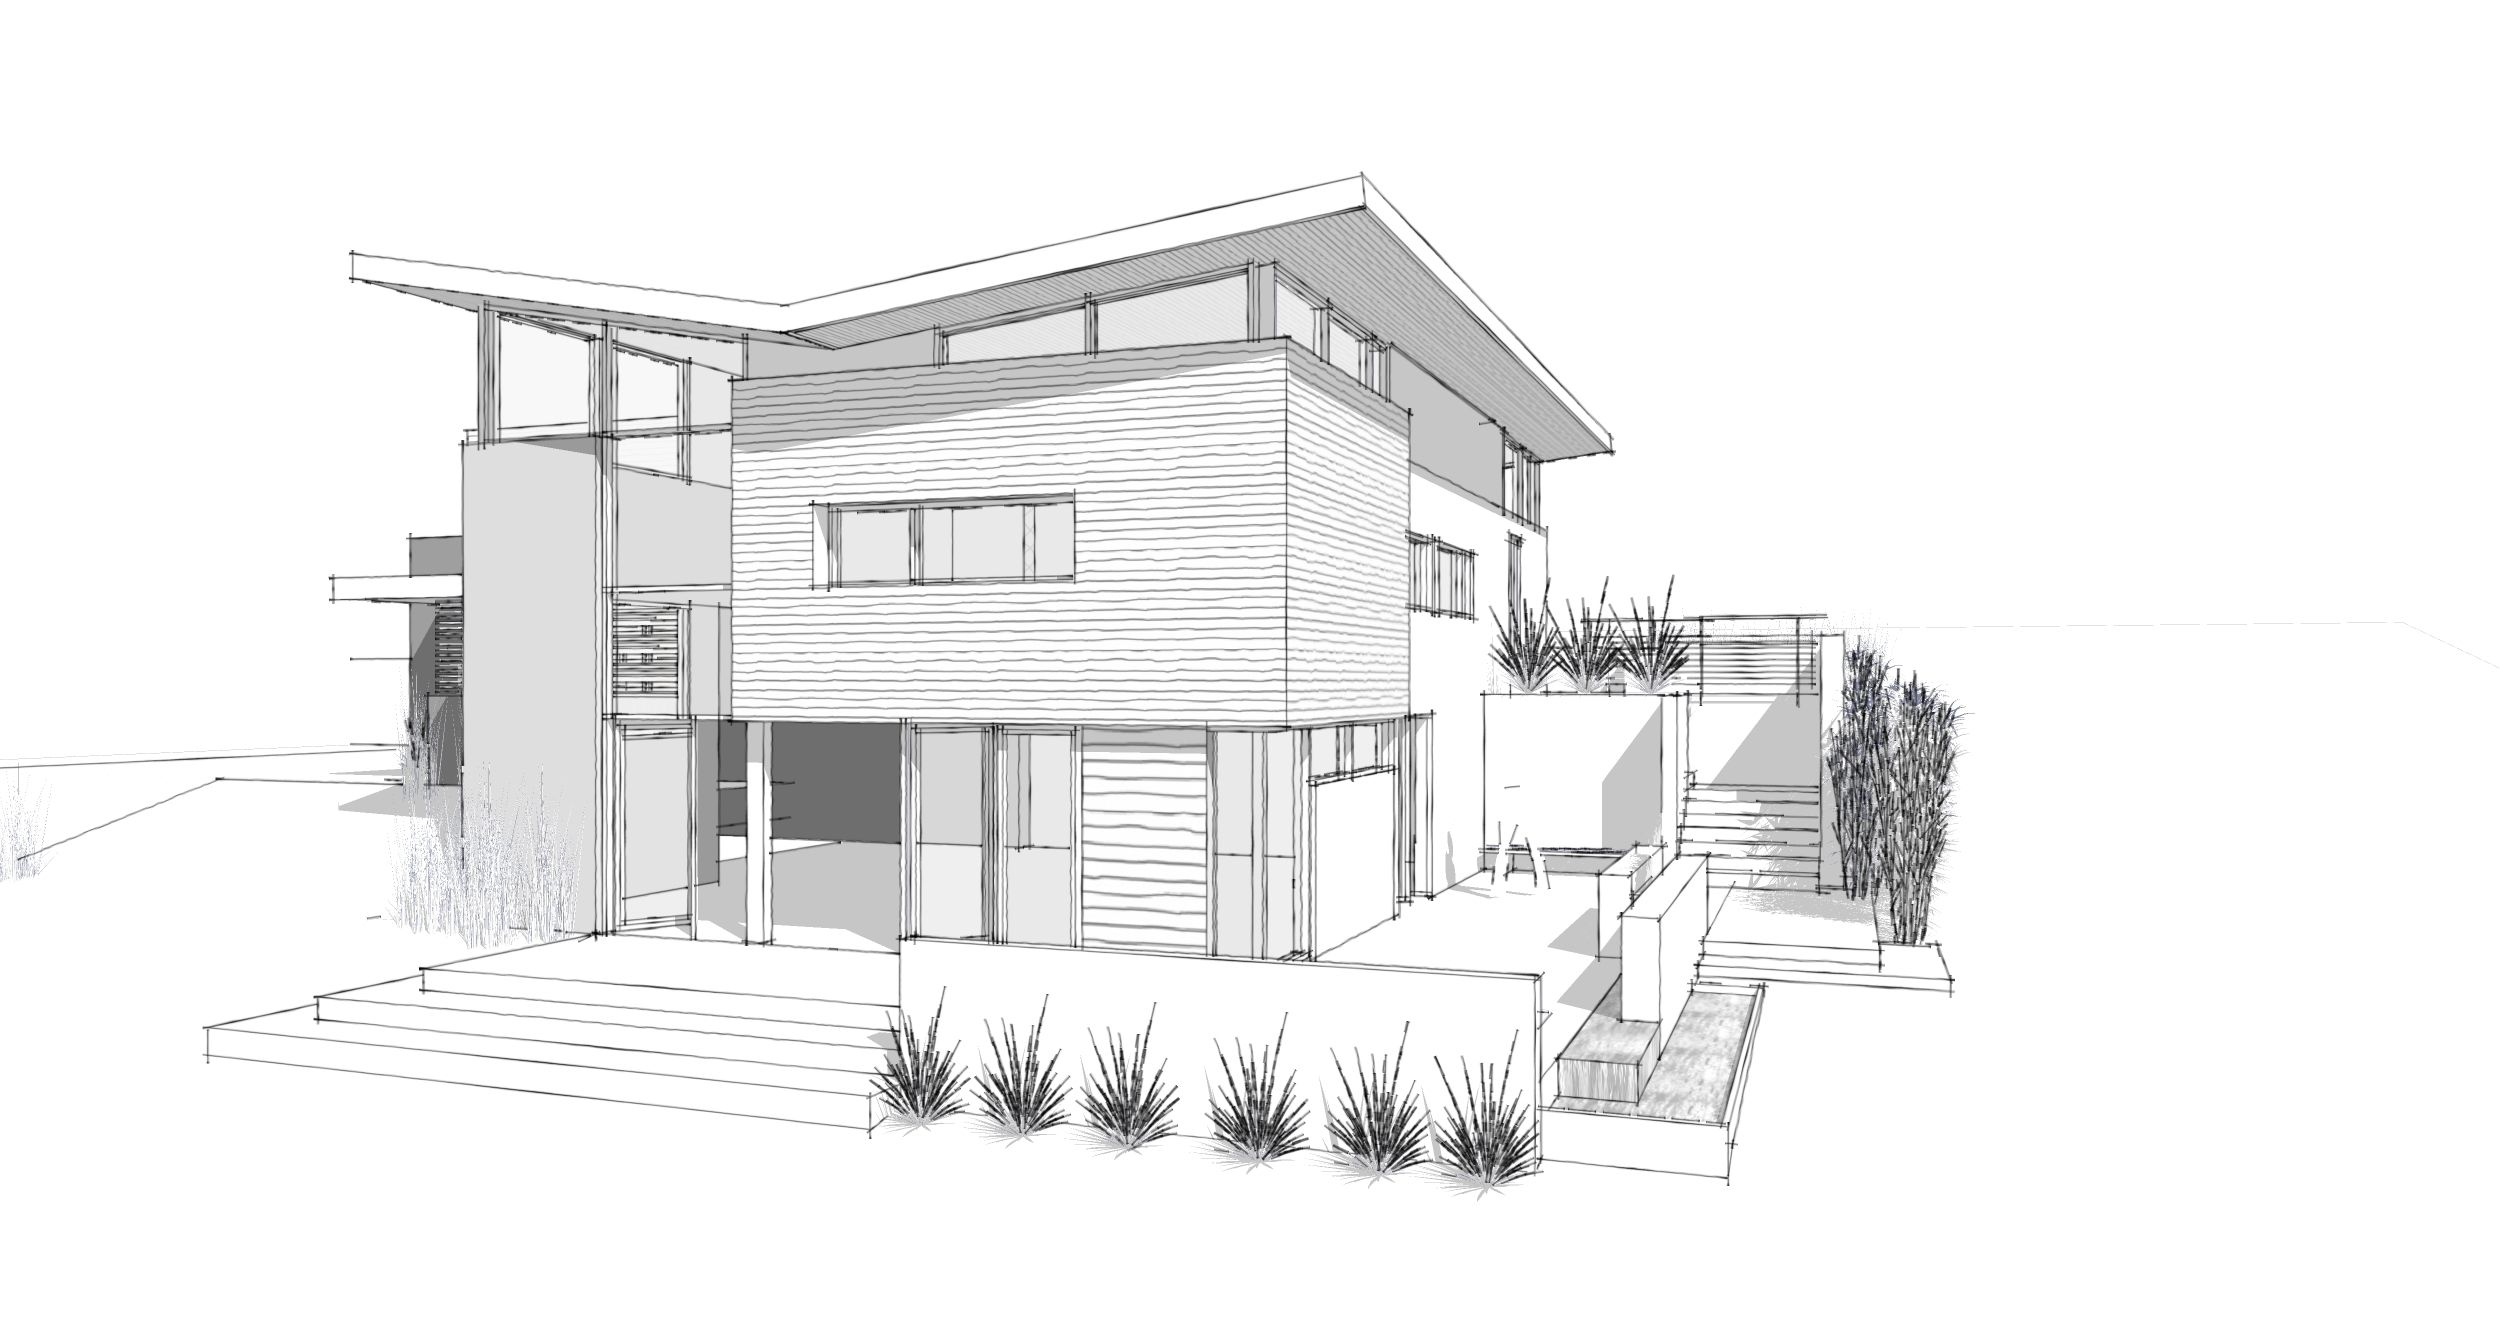 Modern home architecture sketches design ideas 13435 for Architectural house plans